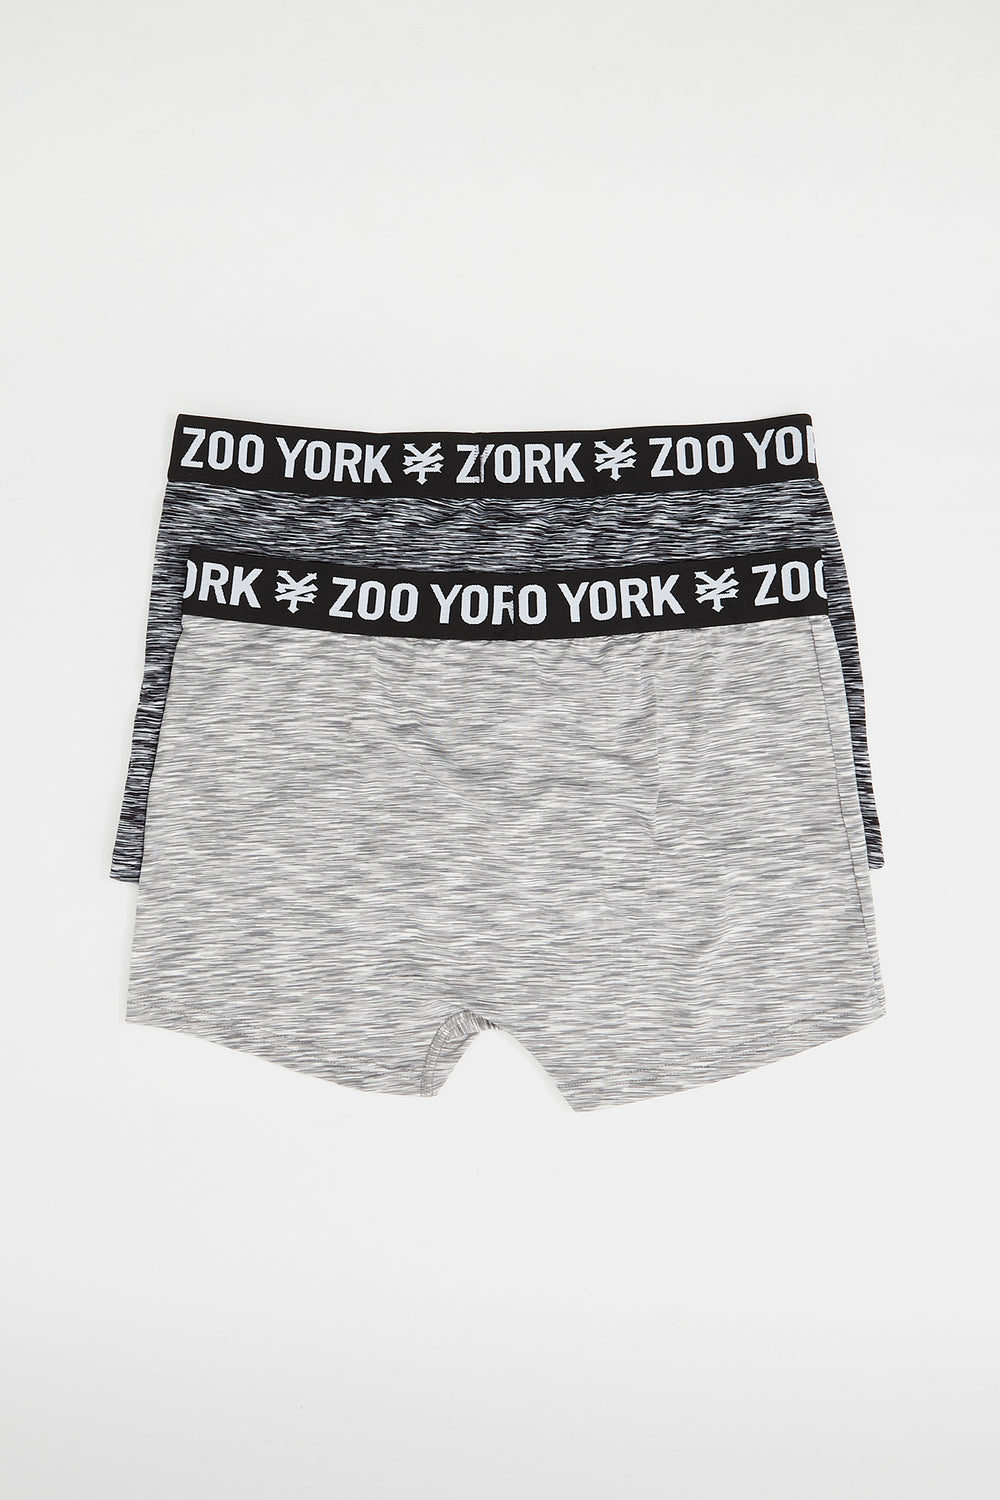 Zoo York Mens Boxers 2-Pack Black